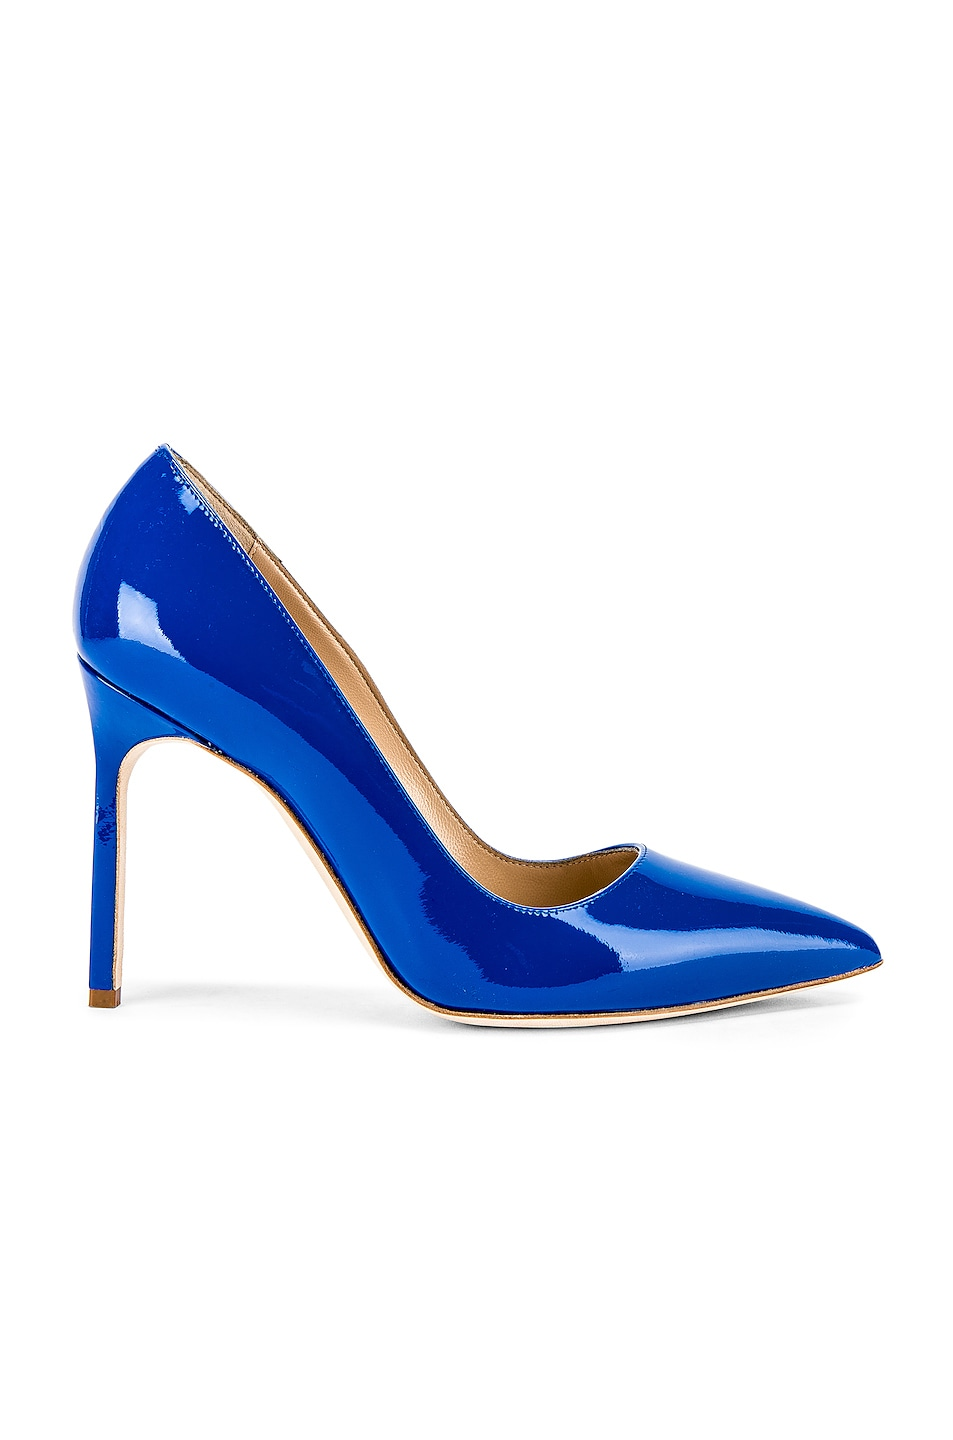 Image 1 of Manolo Blahnik BB Pump in Electric Blue Patent